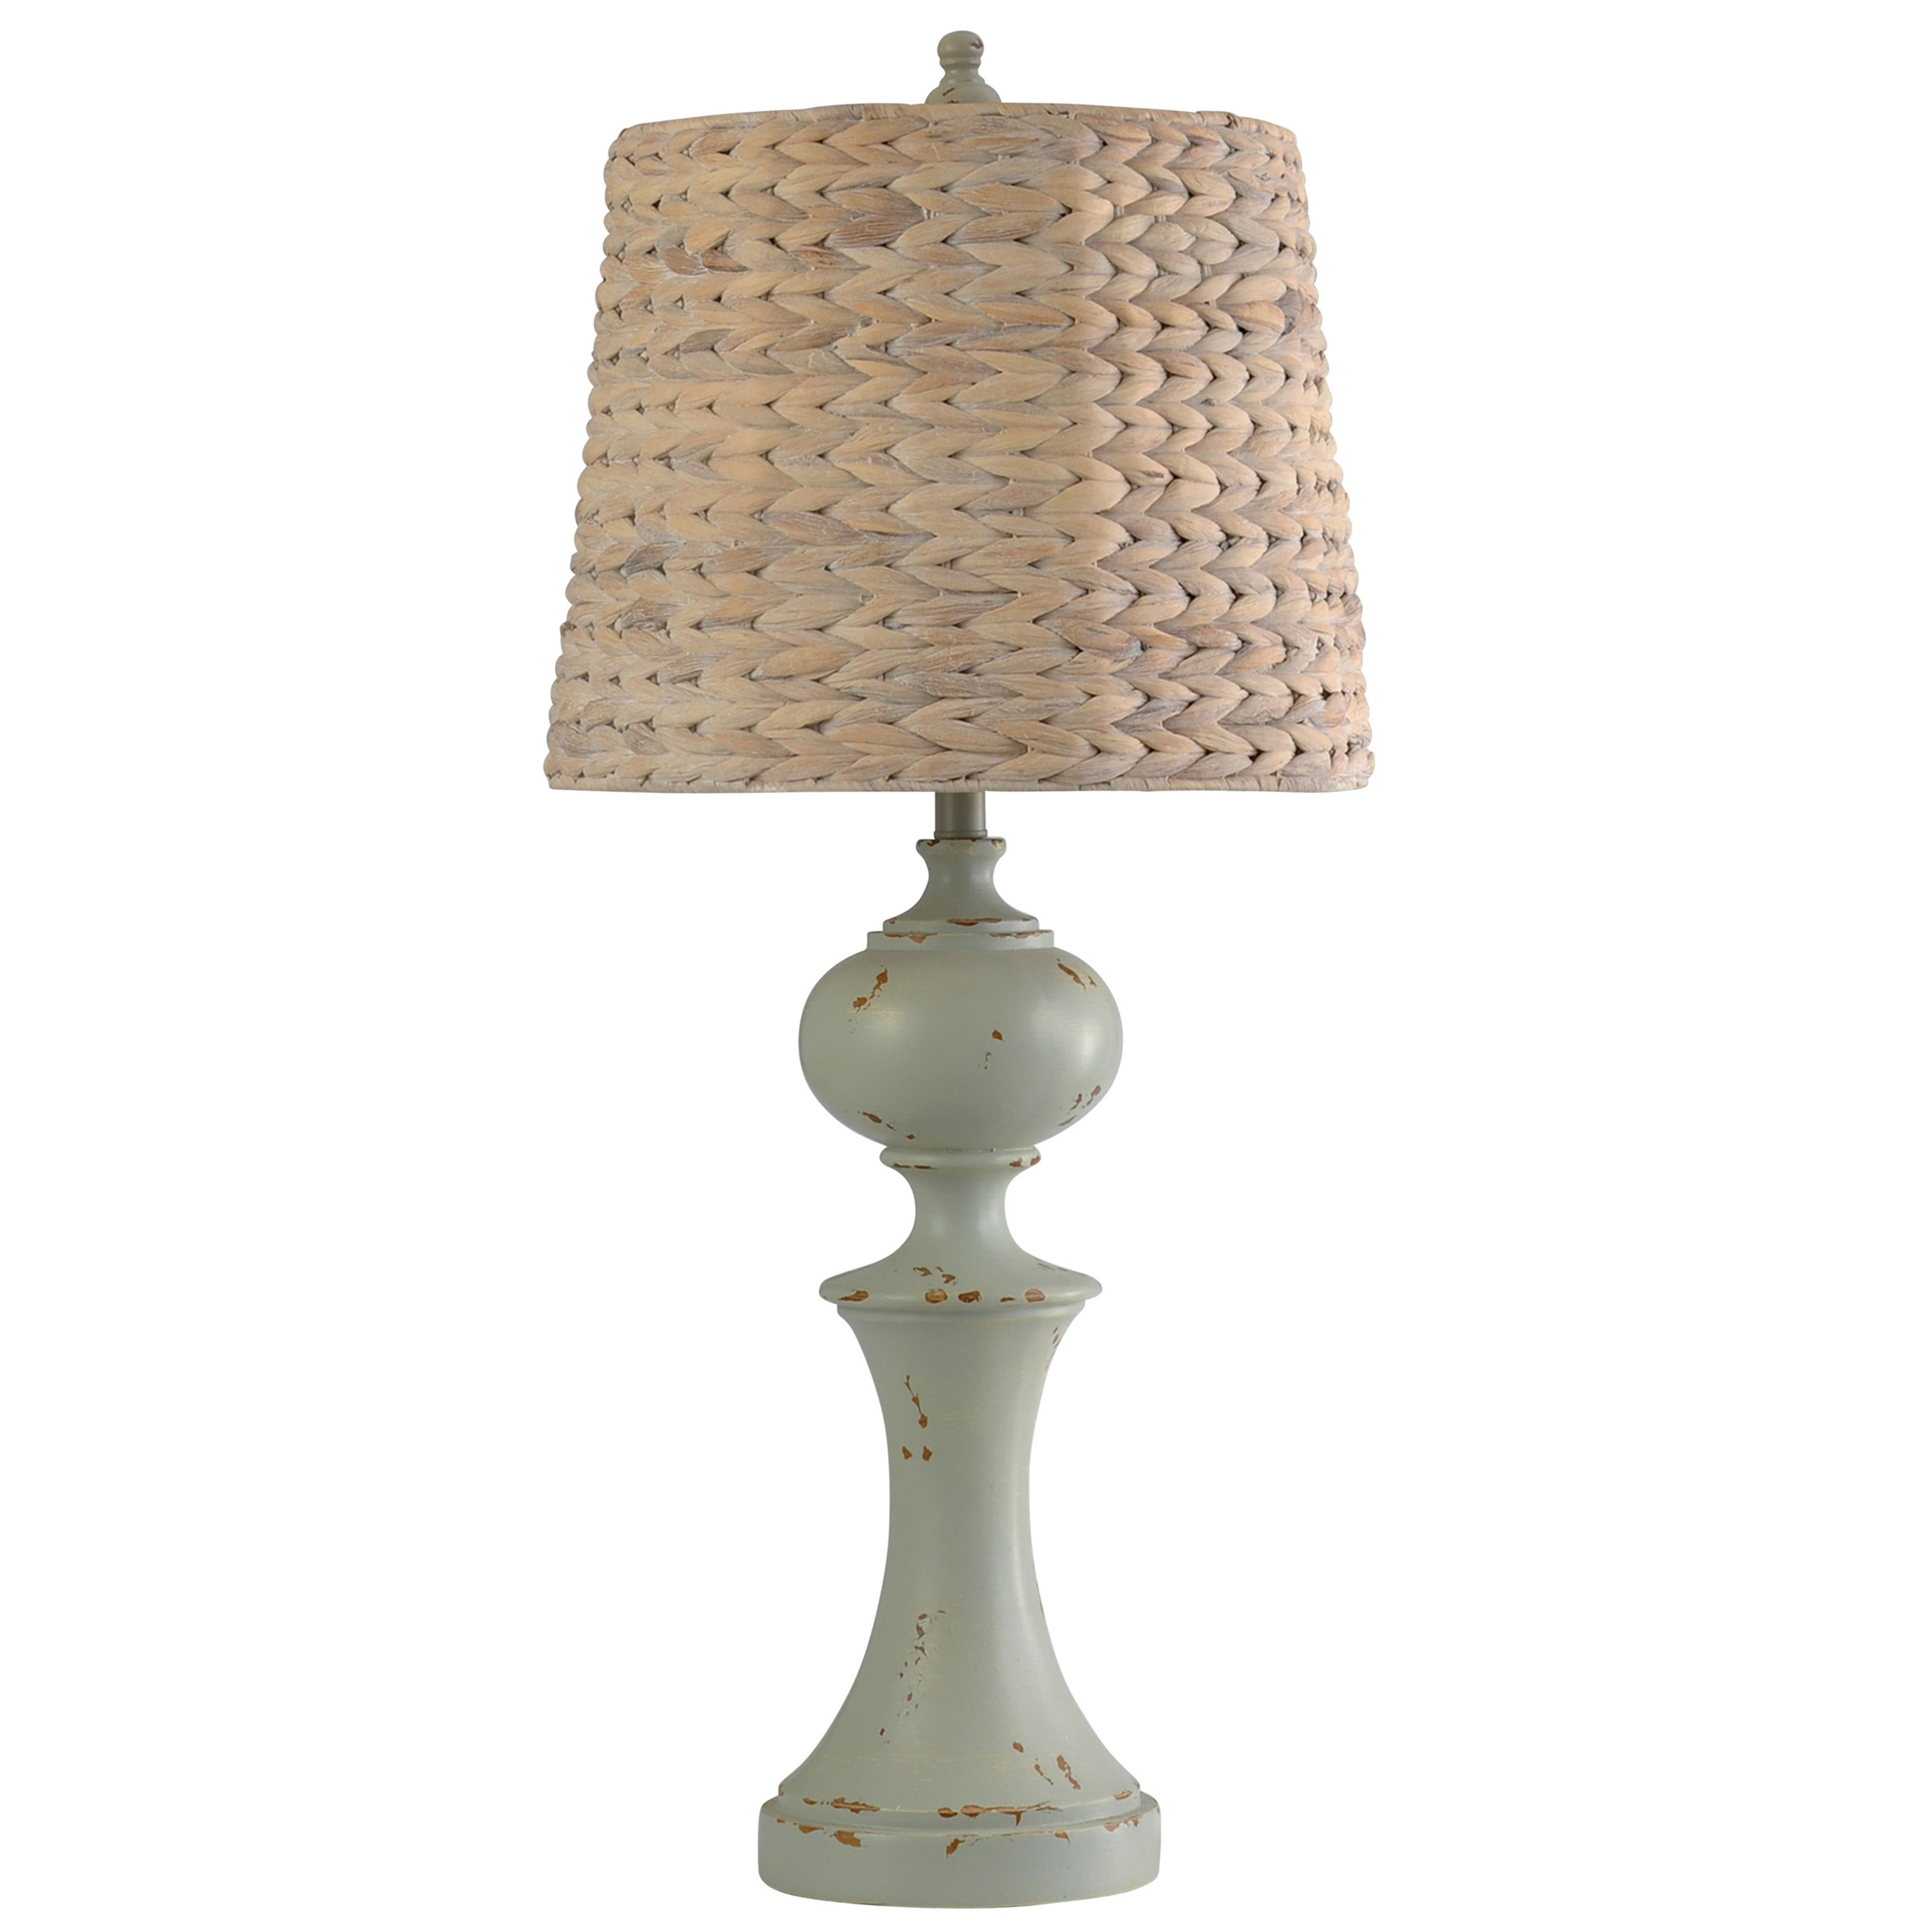 StyleCraft Basilica Sky Turned Style Table Lamp   Natural Seagrass Woven  Shade